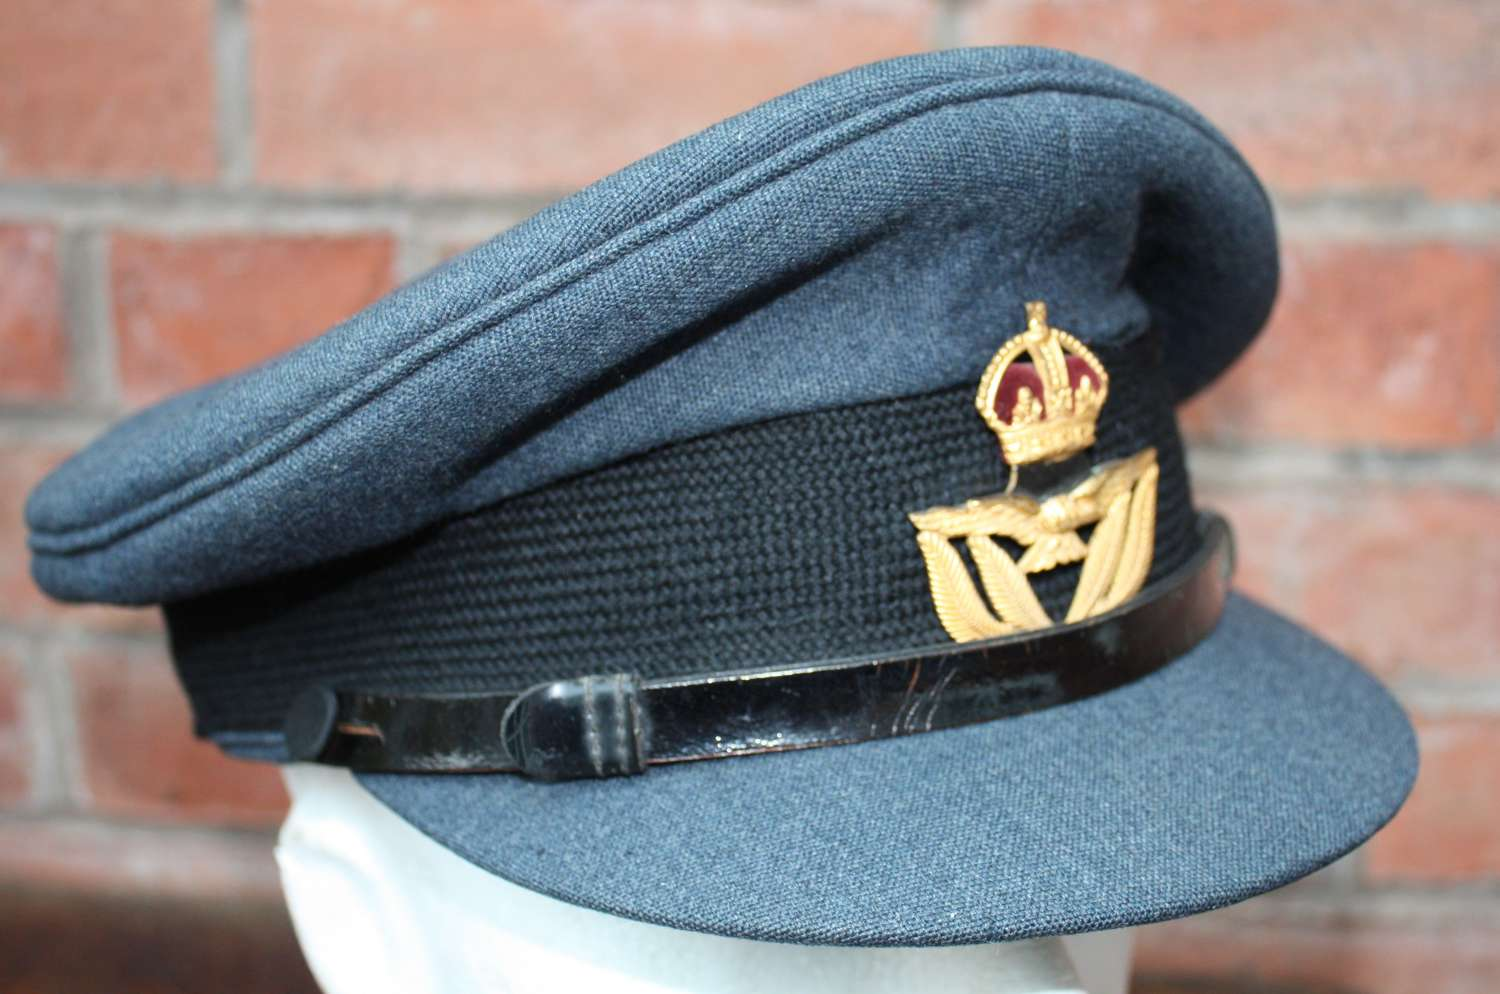 WW2 mint condition RAF Warrant Officers peak cap & Kings Crown Badge.